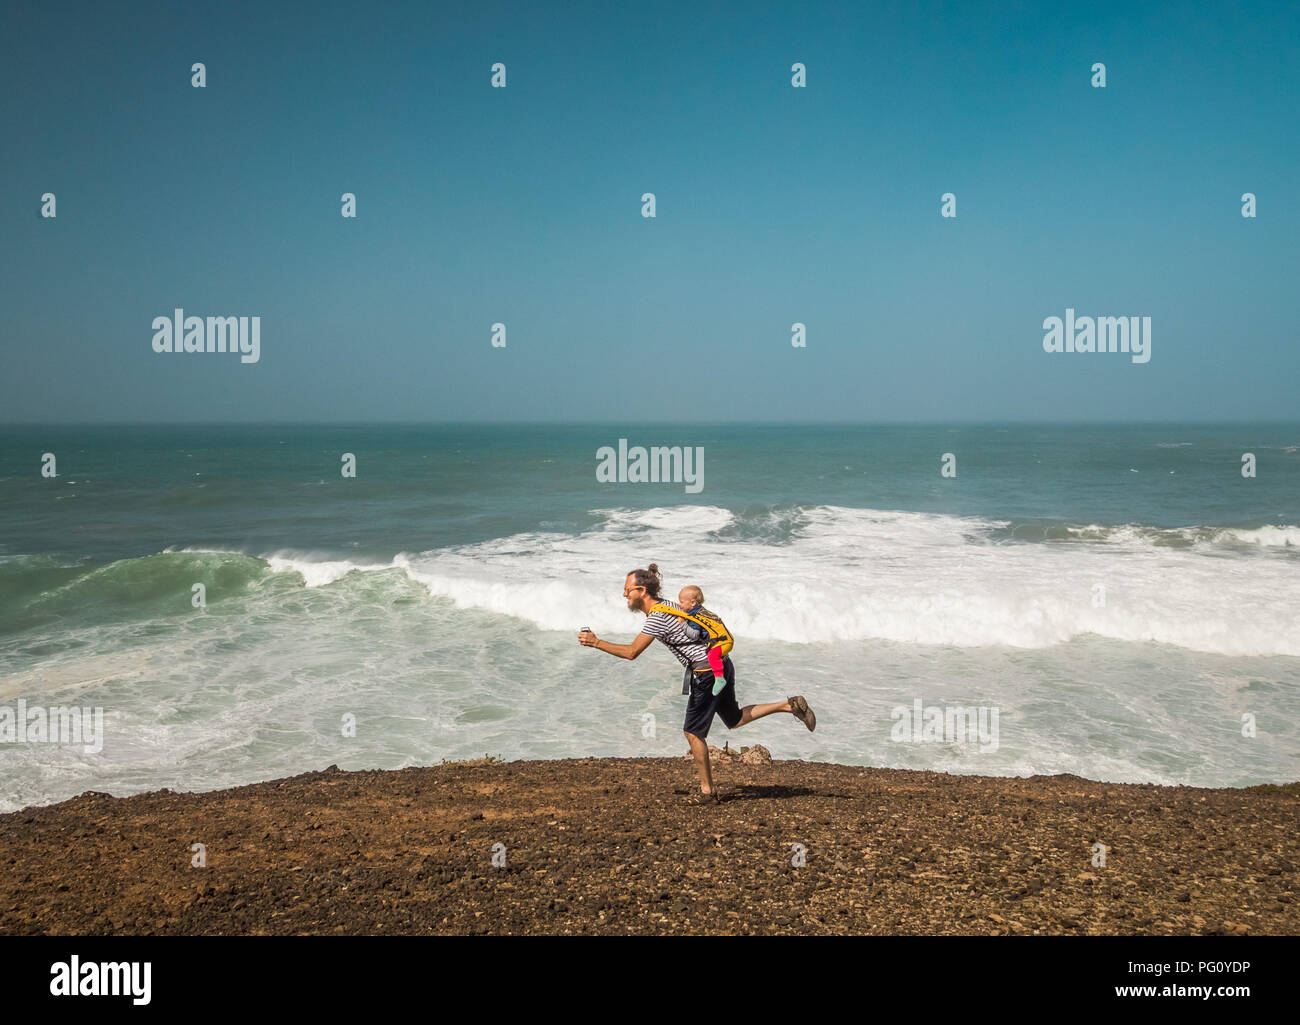 Father with his baby on back goofing around at seaside. - Stock Image